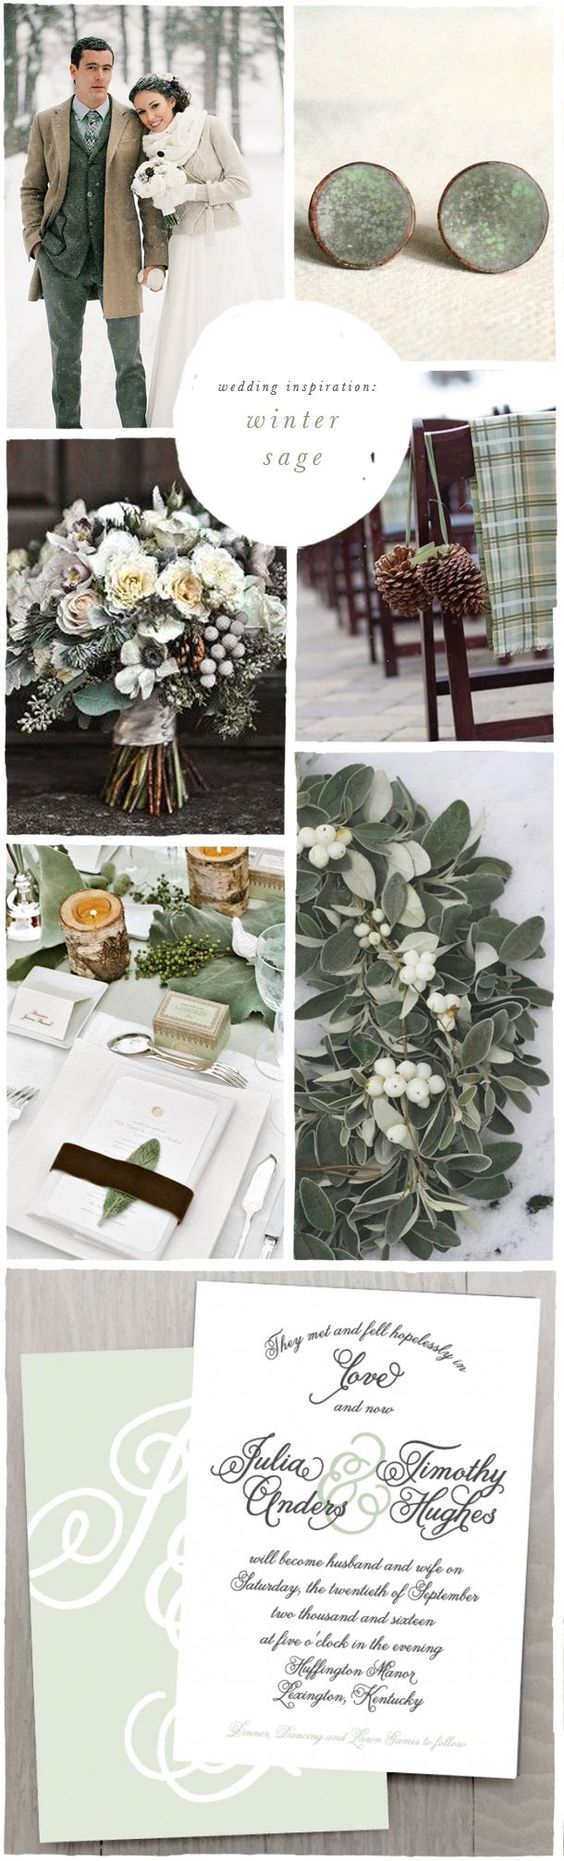 I love the pine cone idea for up the aisle Wedding Ideas By Colour: Gorgeous Green | CHWV